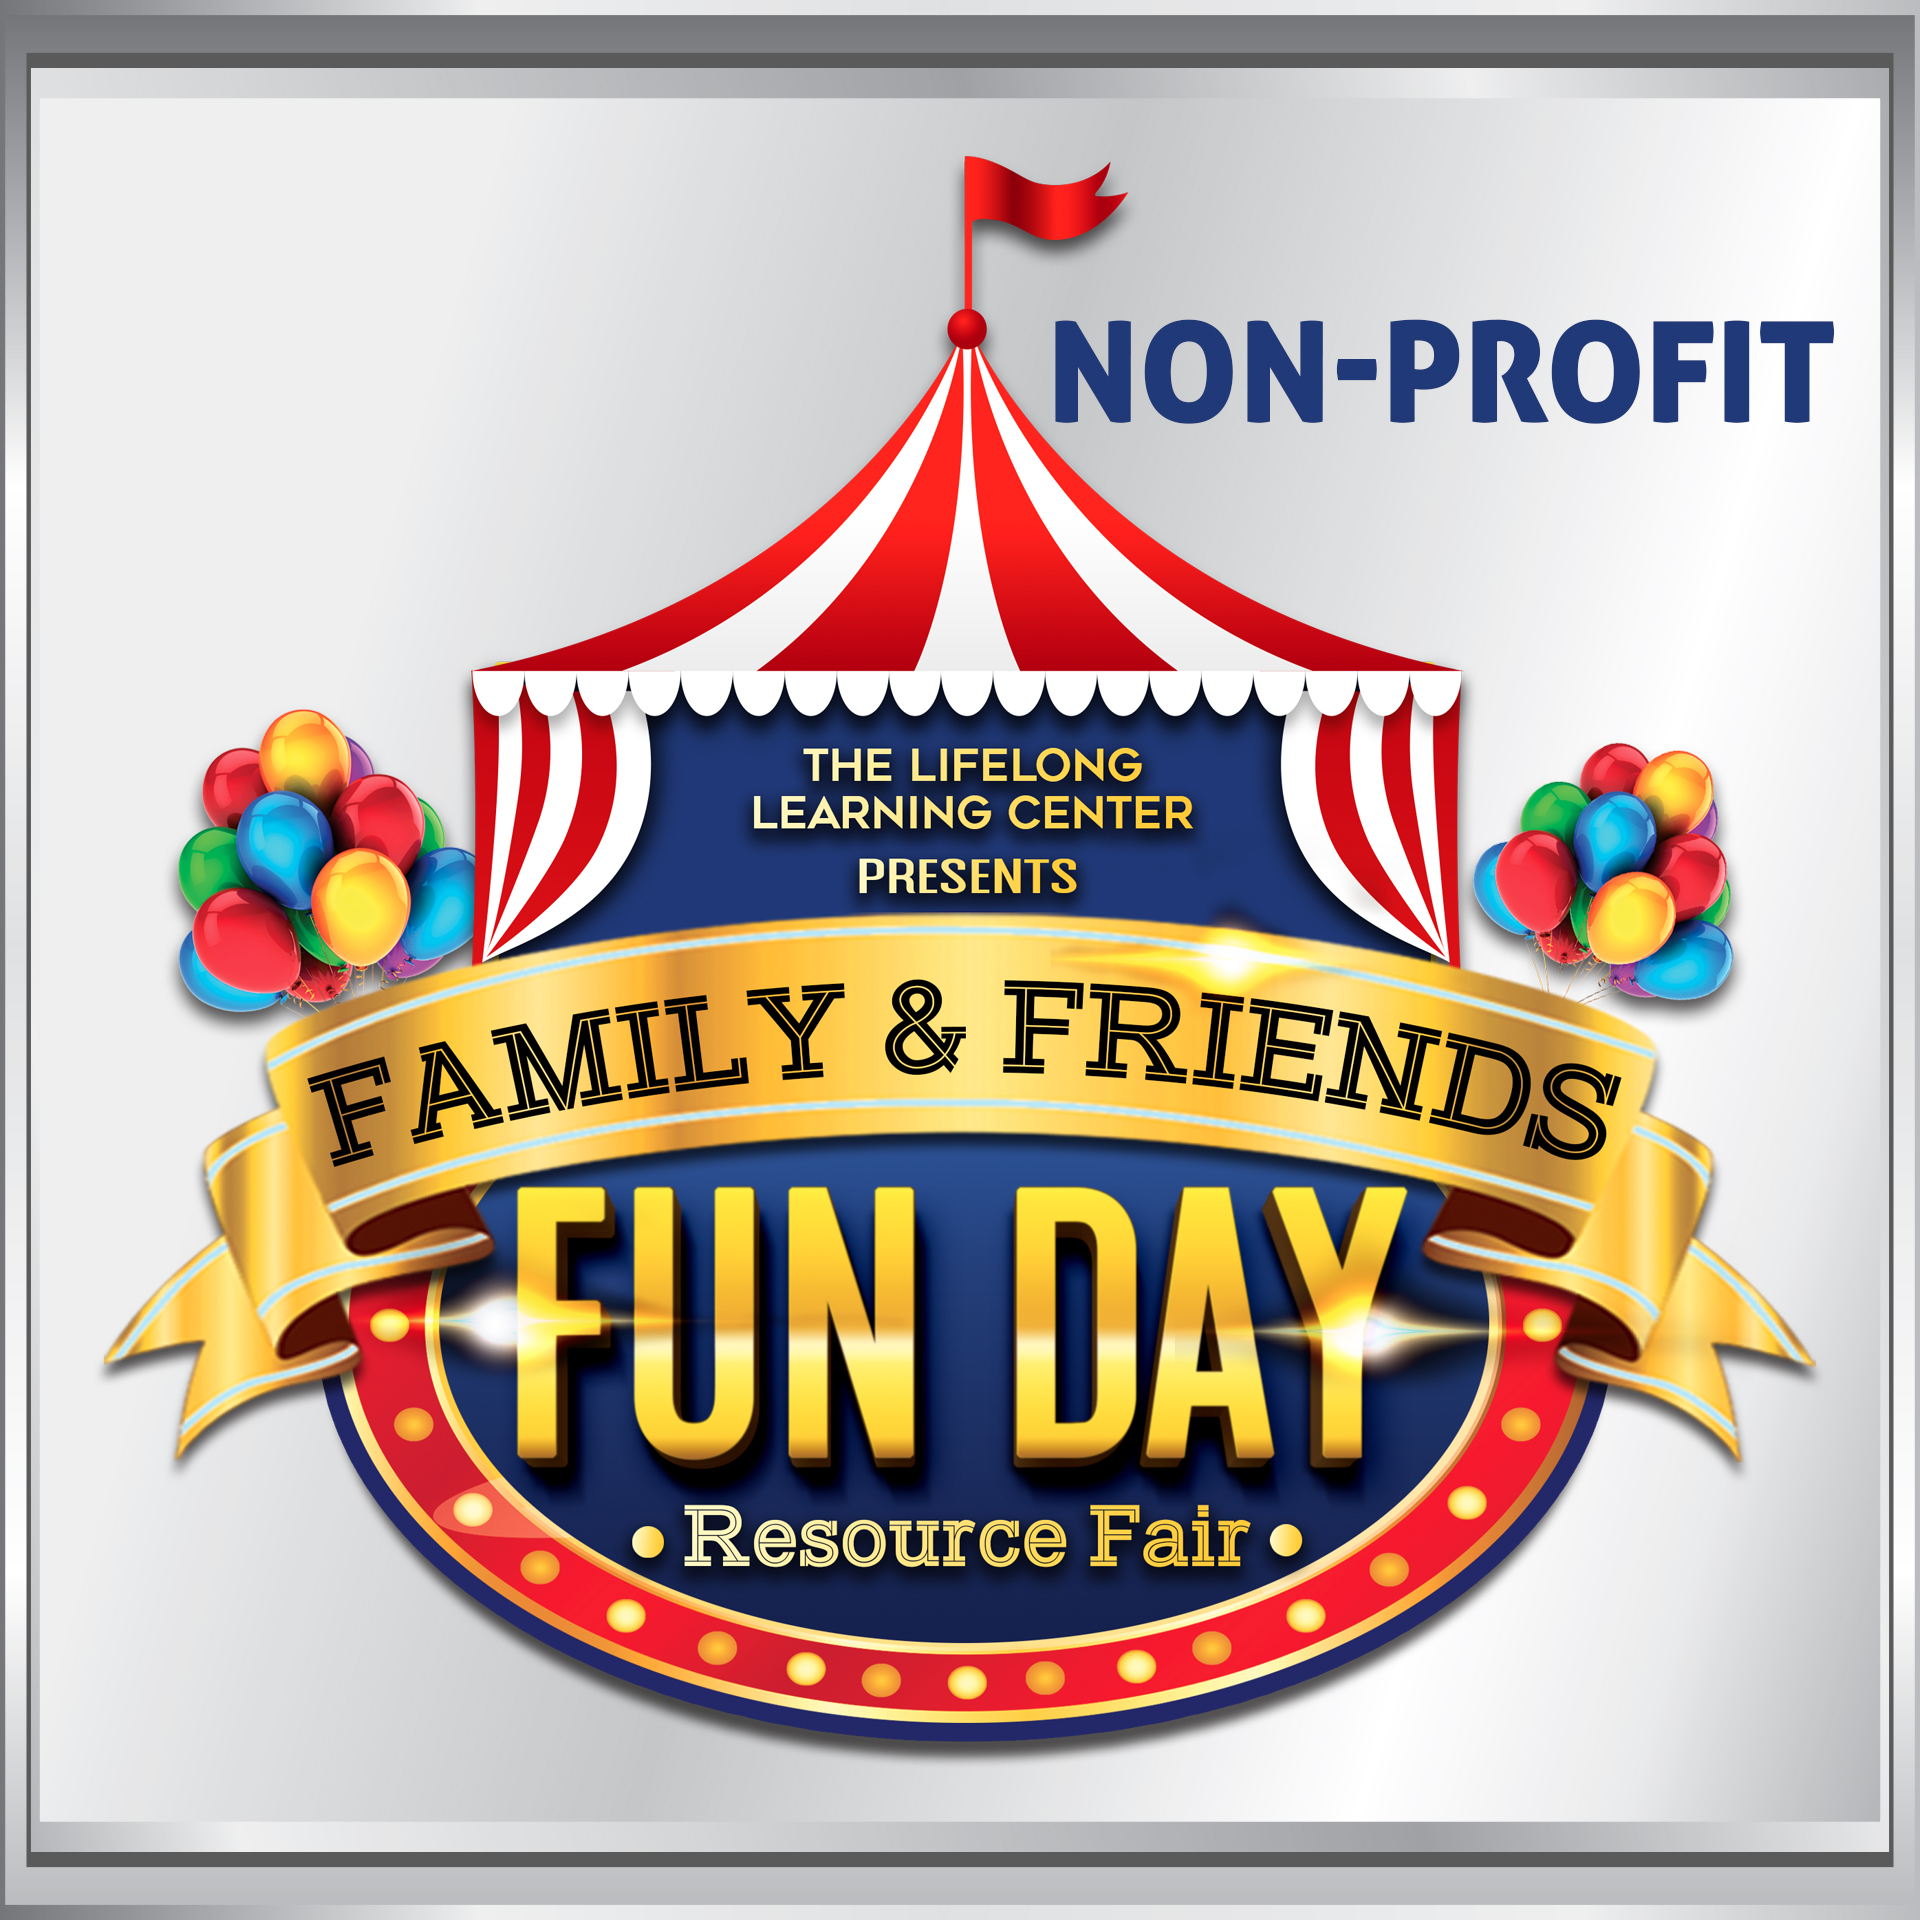 Family and Friends Fun Day Resource Fair - The Lifelong Learning Center